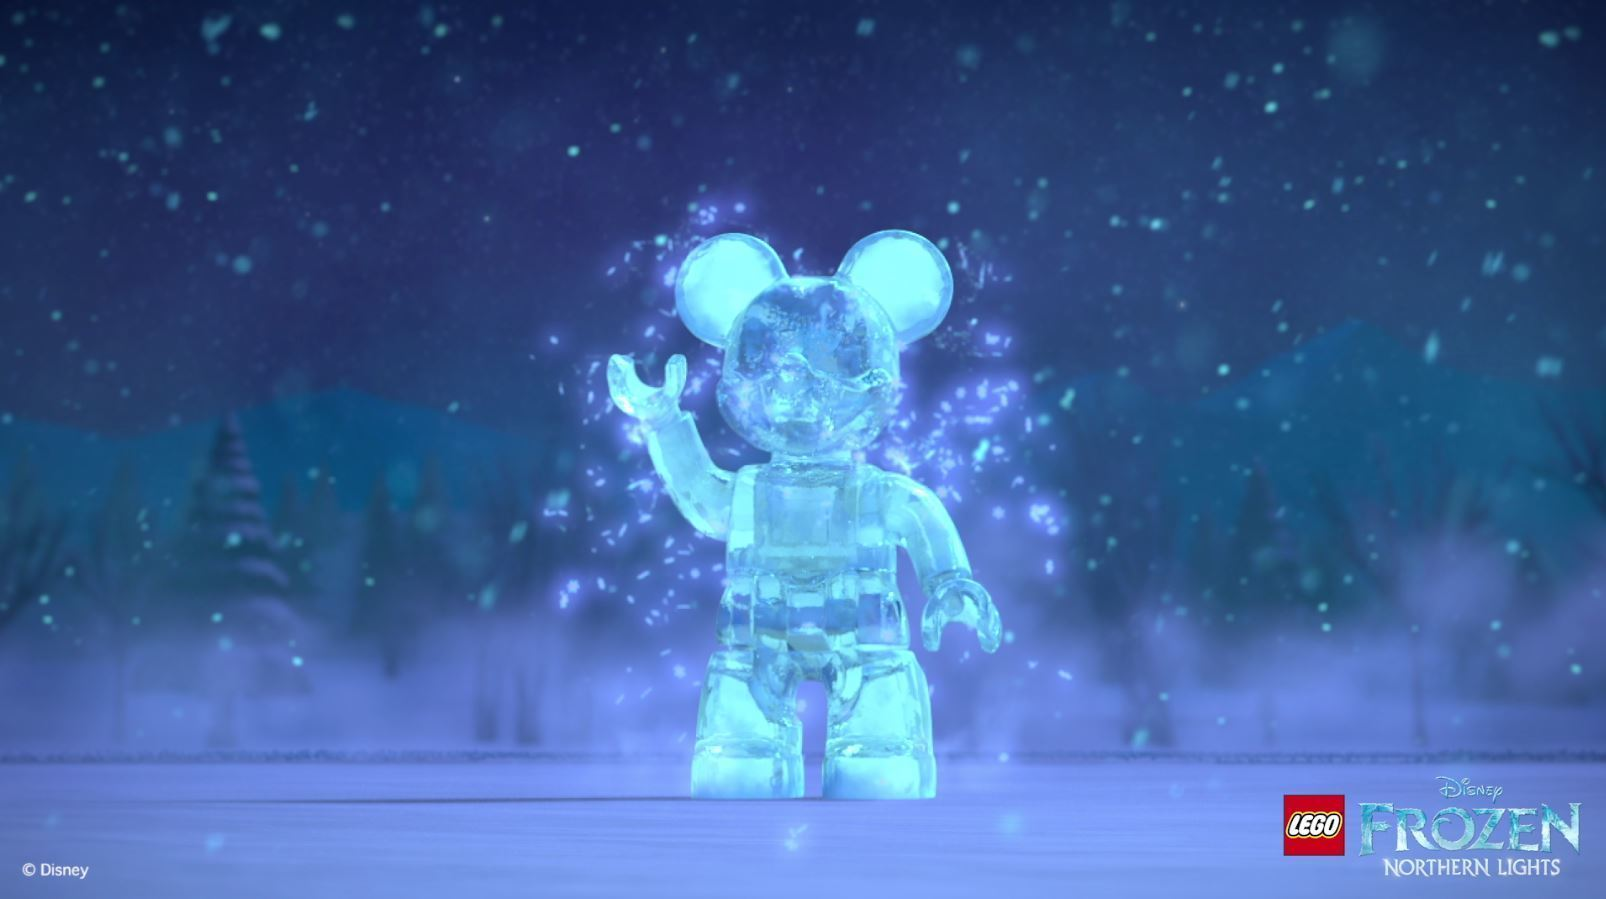 LEGO Disney Frozen Northern Lights – Mickey Mouse